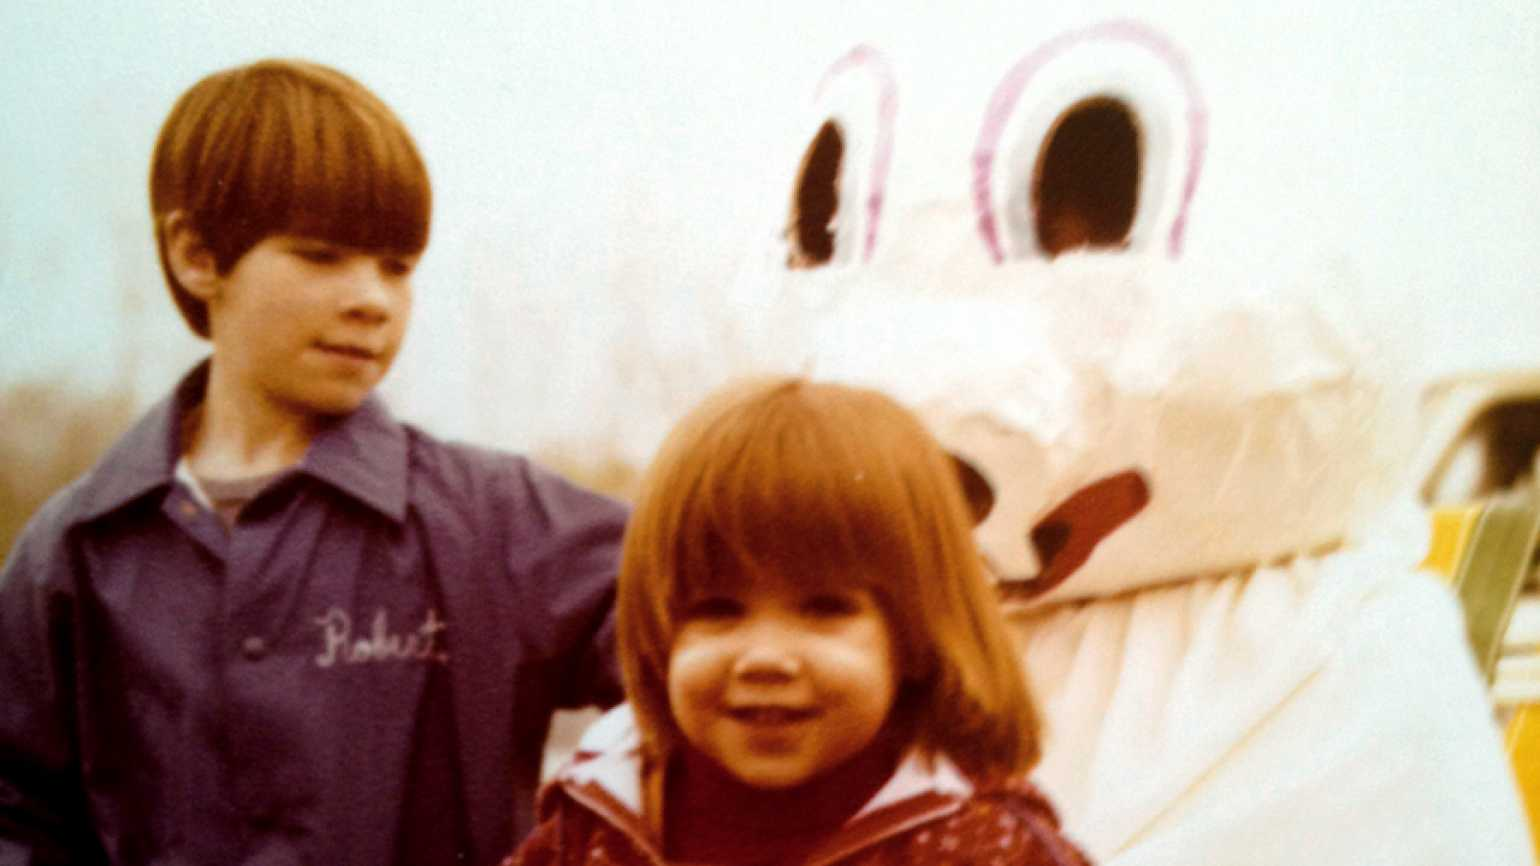 Guideposts: Nicole Woessner and her future husband, Rob, during a long ago Easter egg hunt